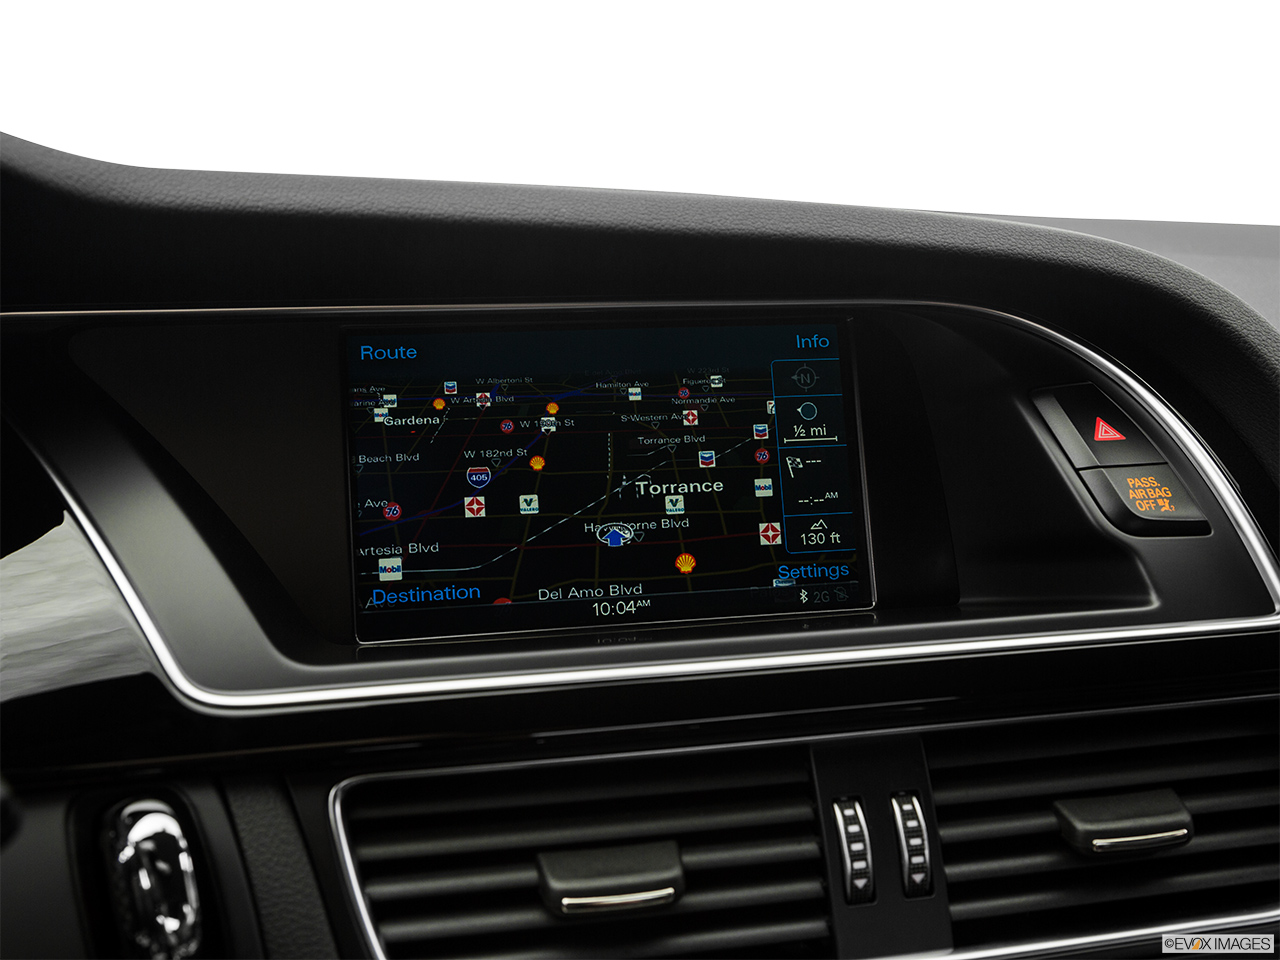 2017 Audi A5 Sport 2.0 TFSI Driver position view of navigation system.